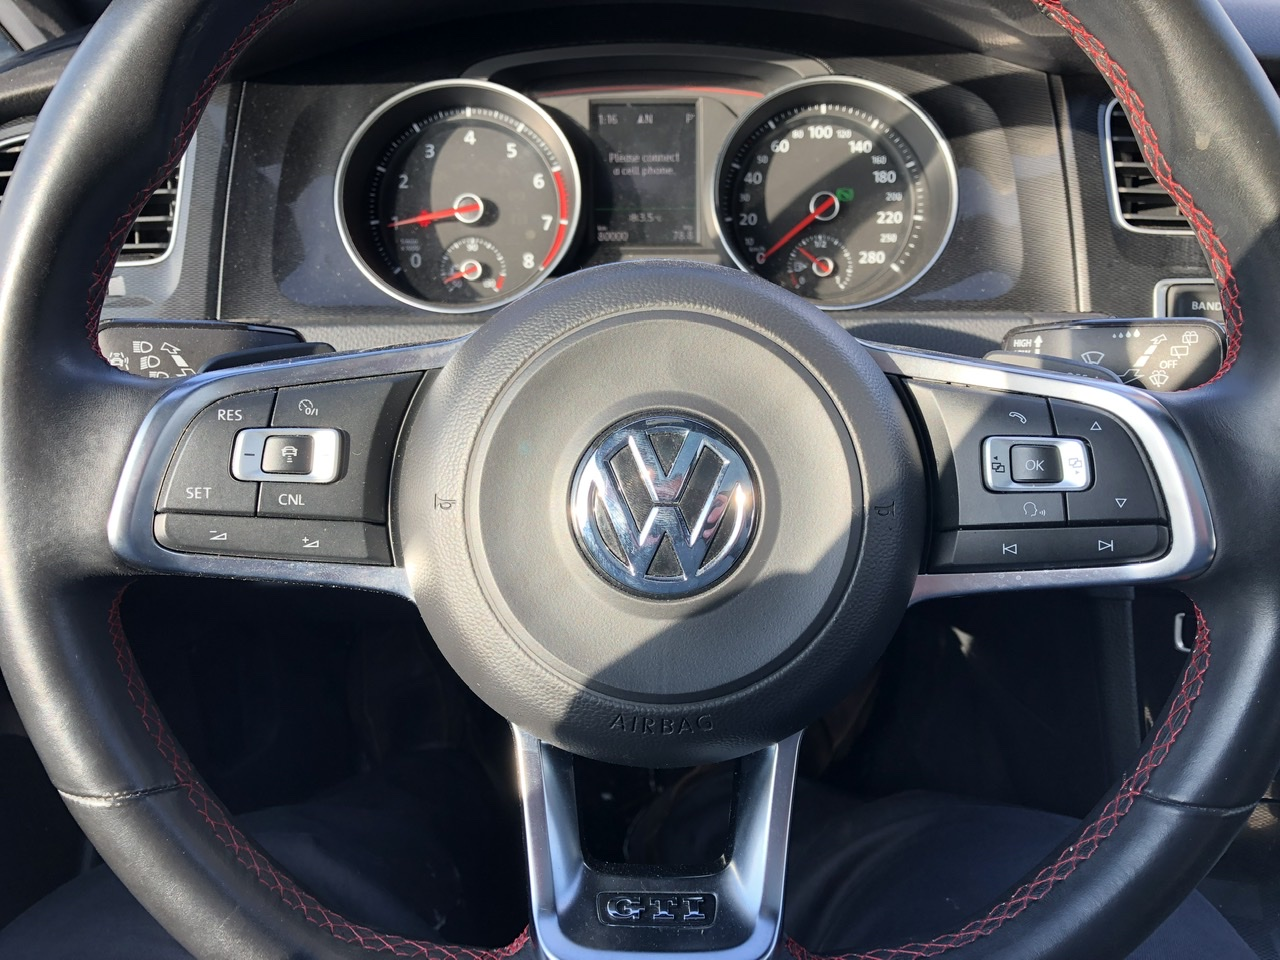 Certified Pre-Owned 2016 Volkswagen GTI Autobahn Auto - LOADED - Navigation/Leather